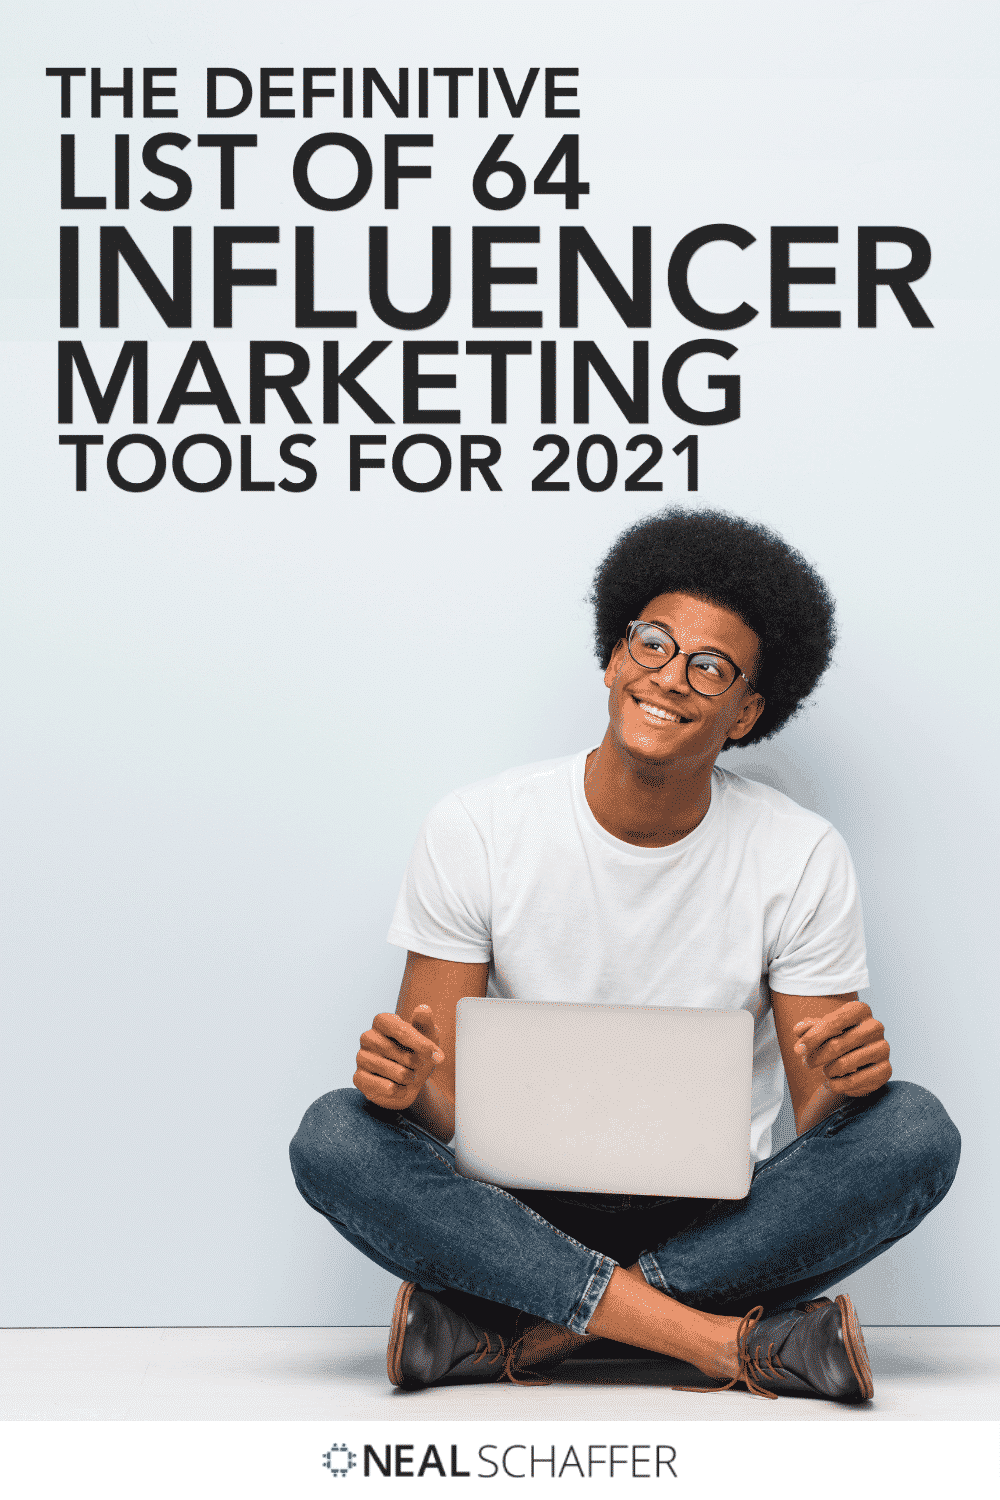 As mentioned in The Age of Influence, this is an always up-to-date definitive list of influencer marketing tools, marketplaces, and agencies.